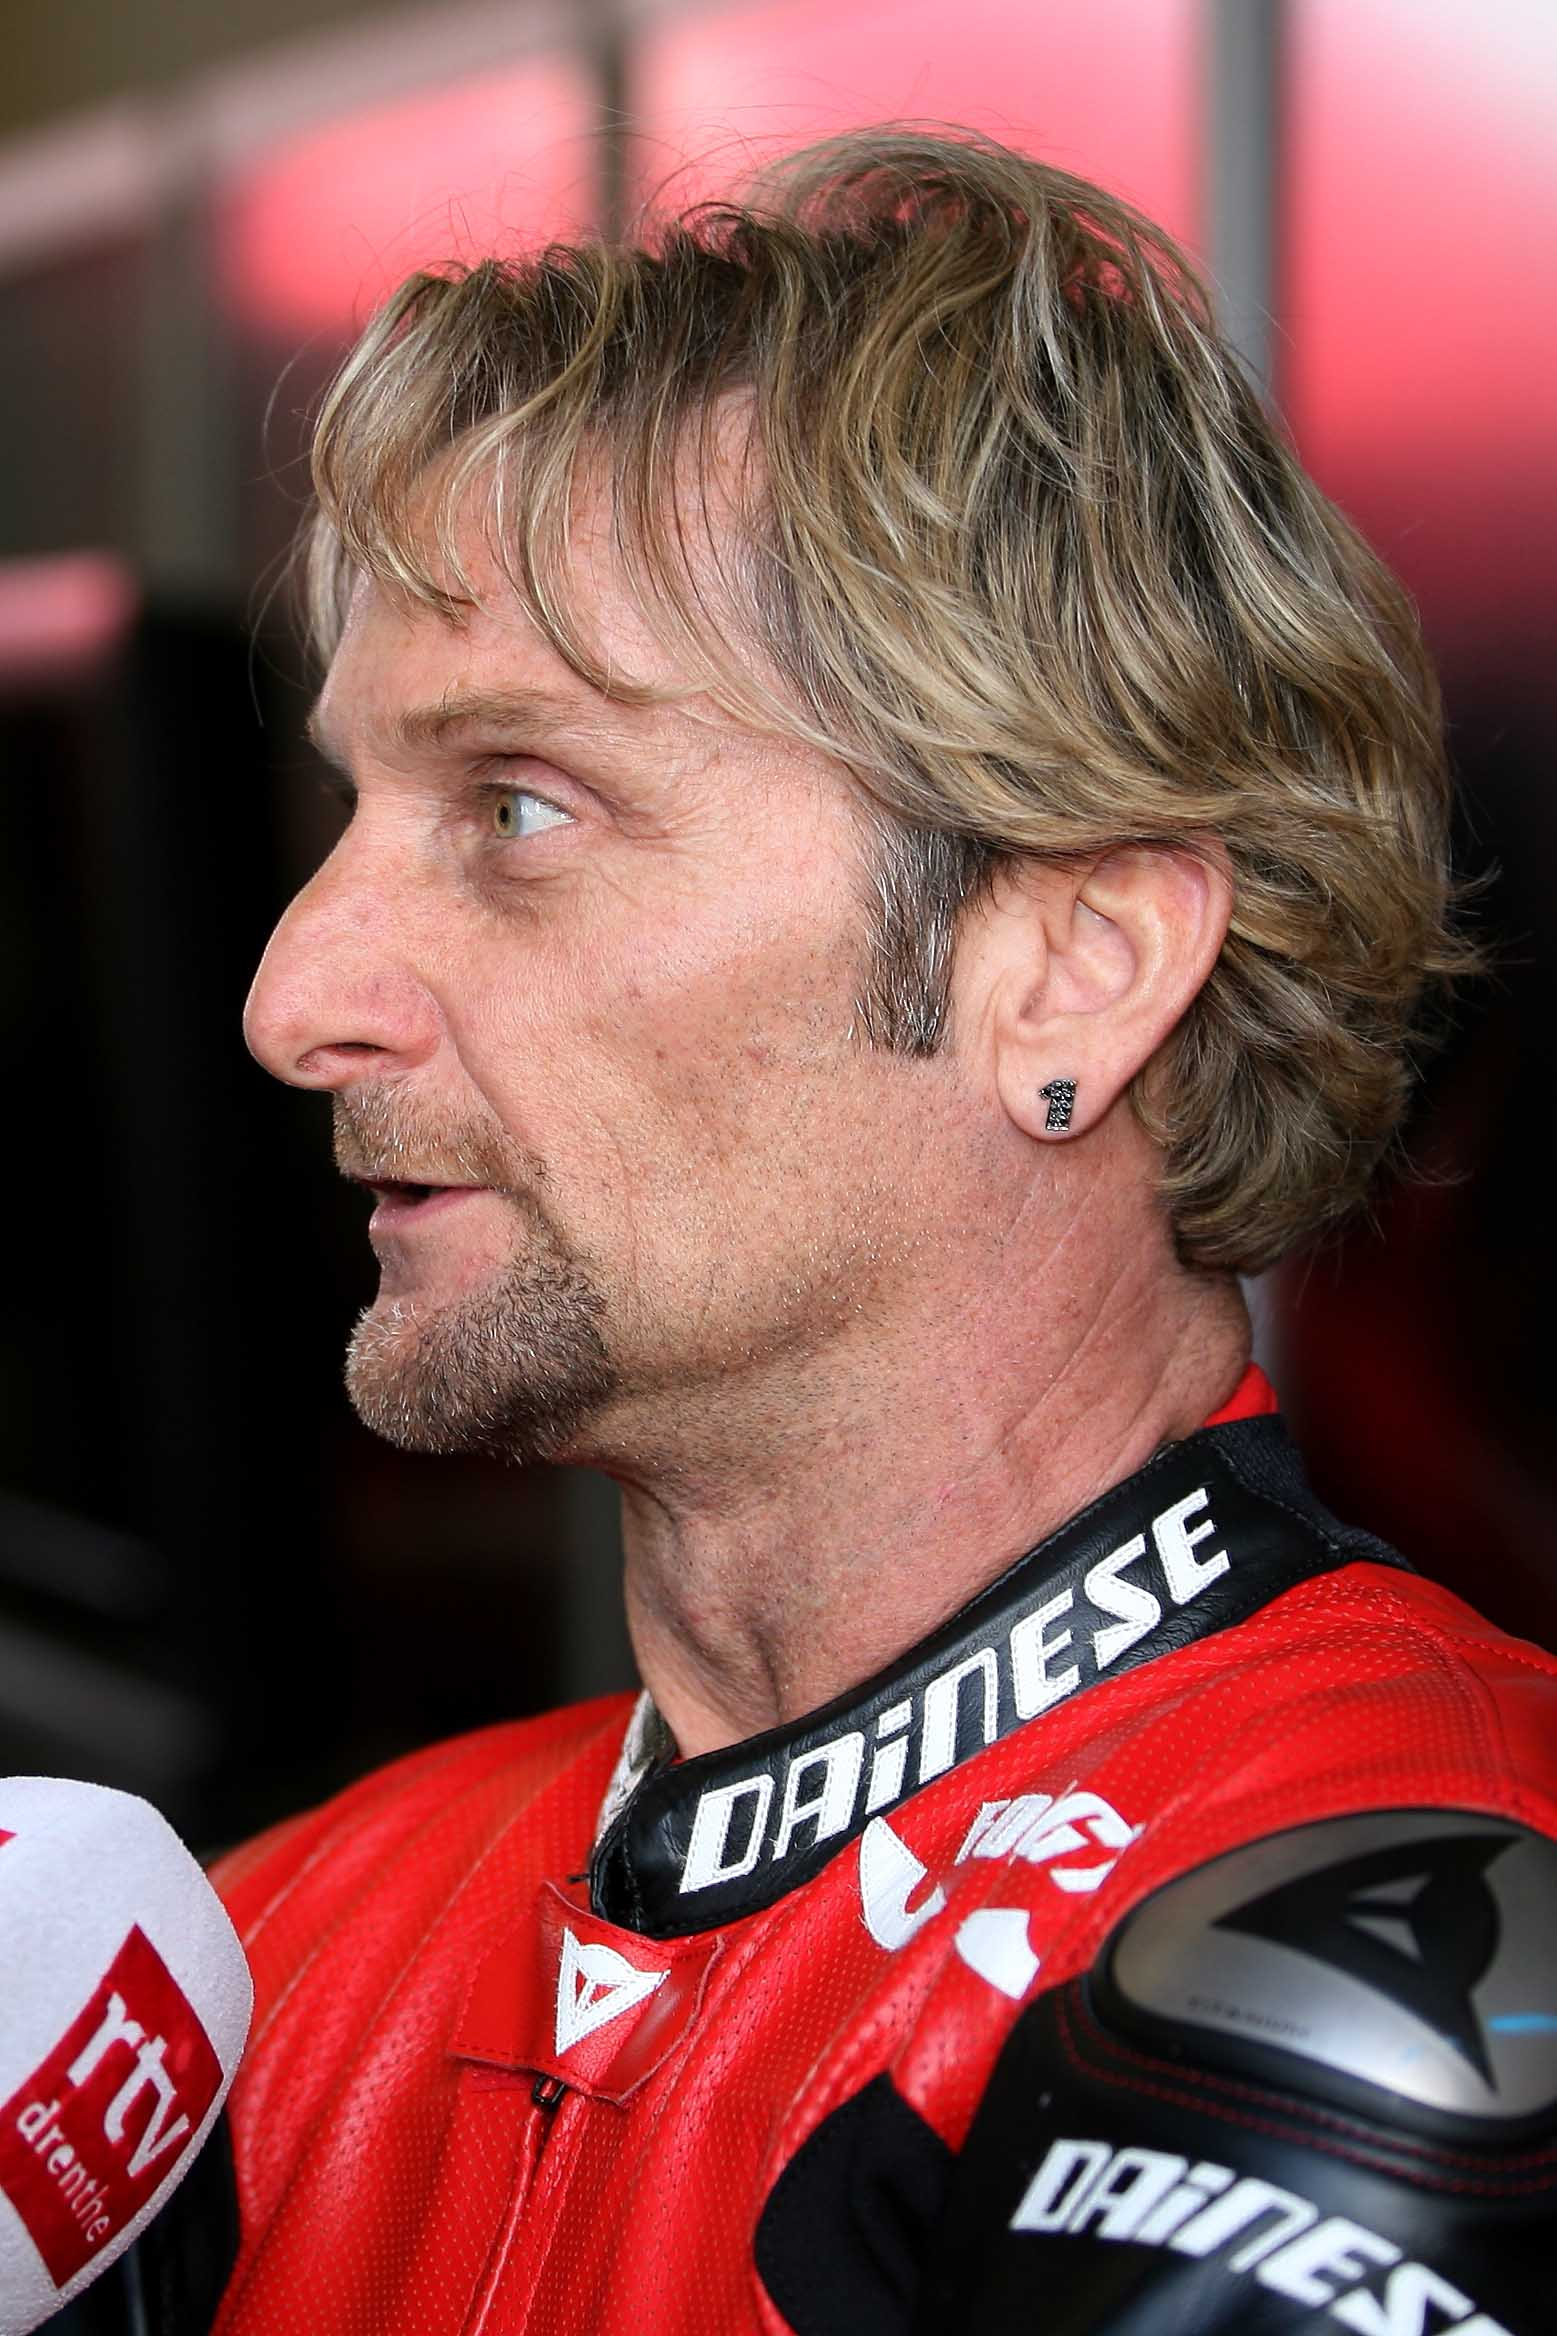 carlfogarty_assen2012_0009_LOW_RES